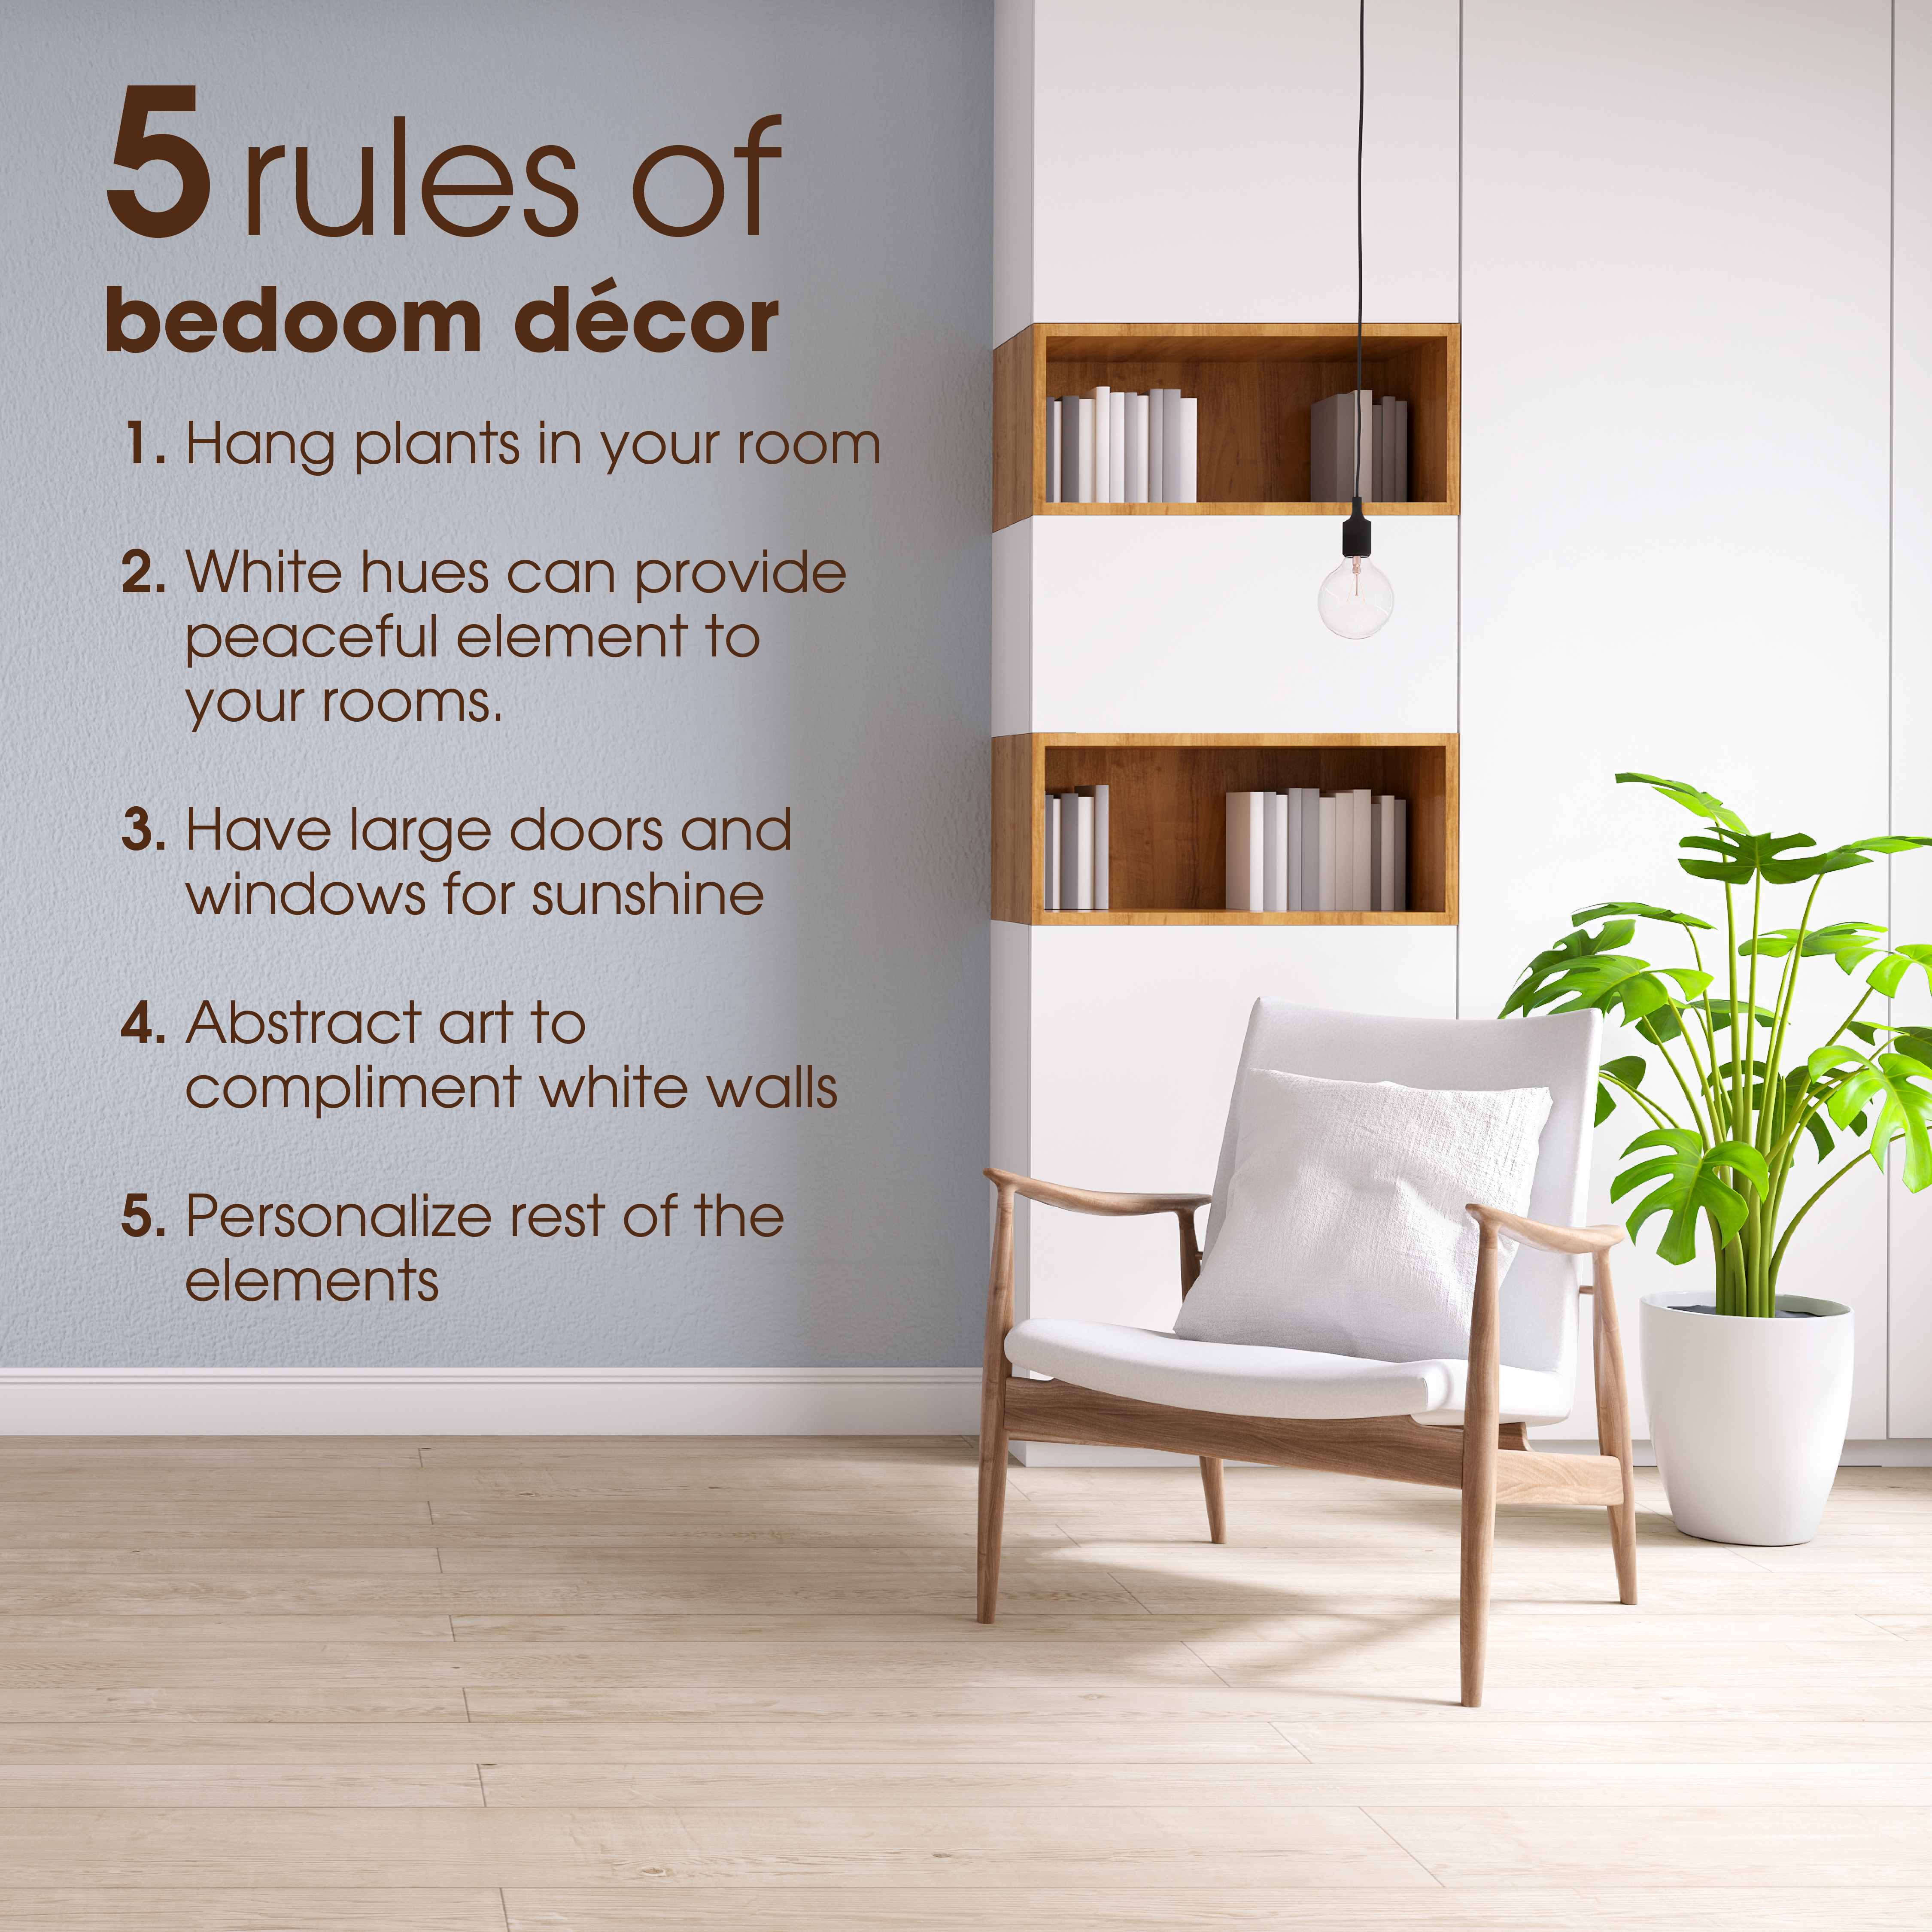 Glorify Your Bedroom With Some Amazing Tactics And Rules Mentioned Above Check Out The Link Below For A Good Collec Bedroom Decor Decor Interior Design Career